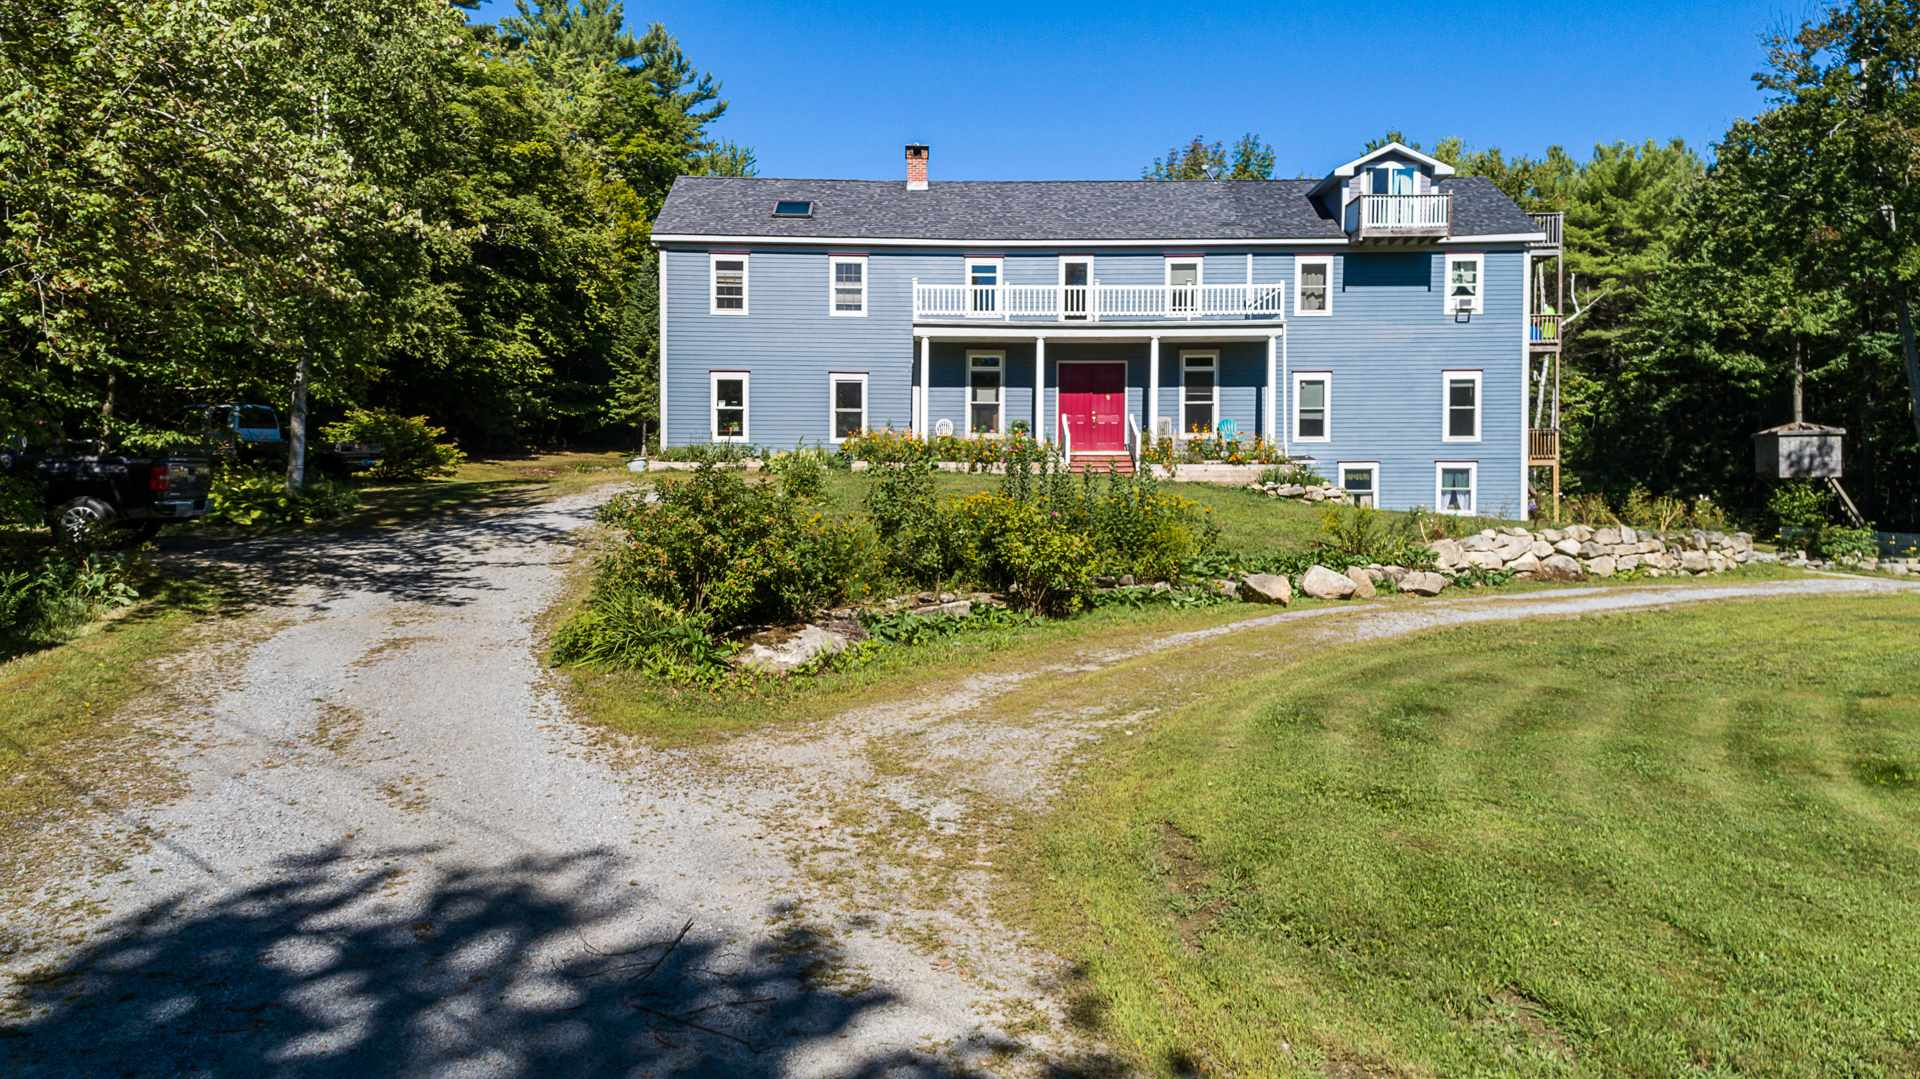 MLS 4826323: 52 Bog Road, New London NH